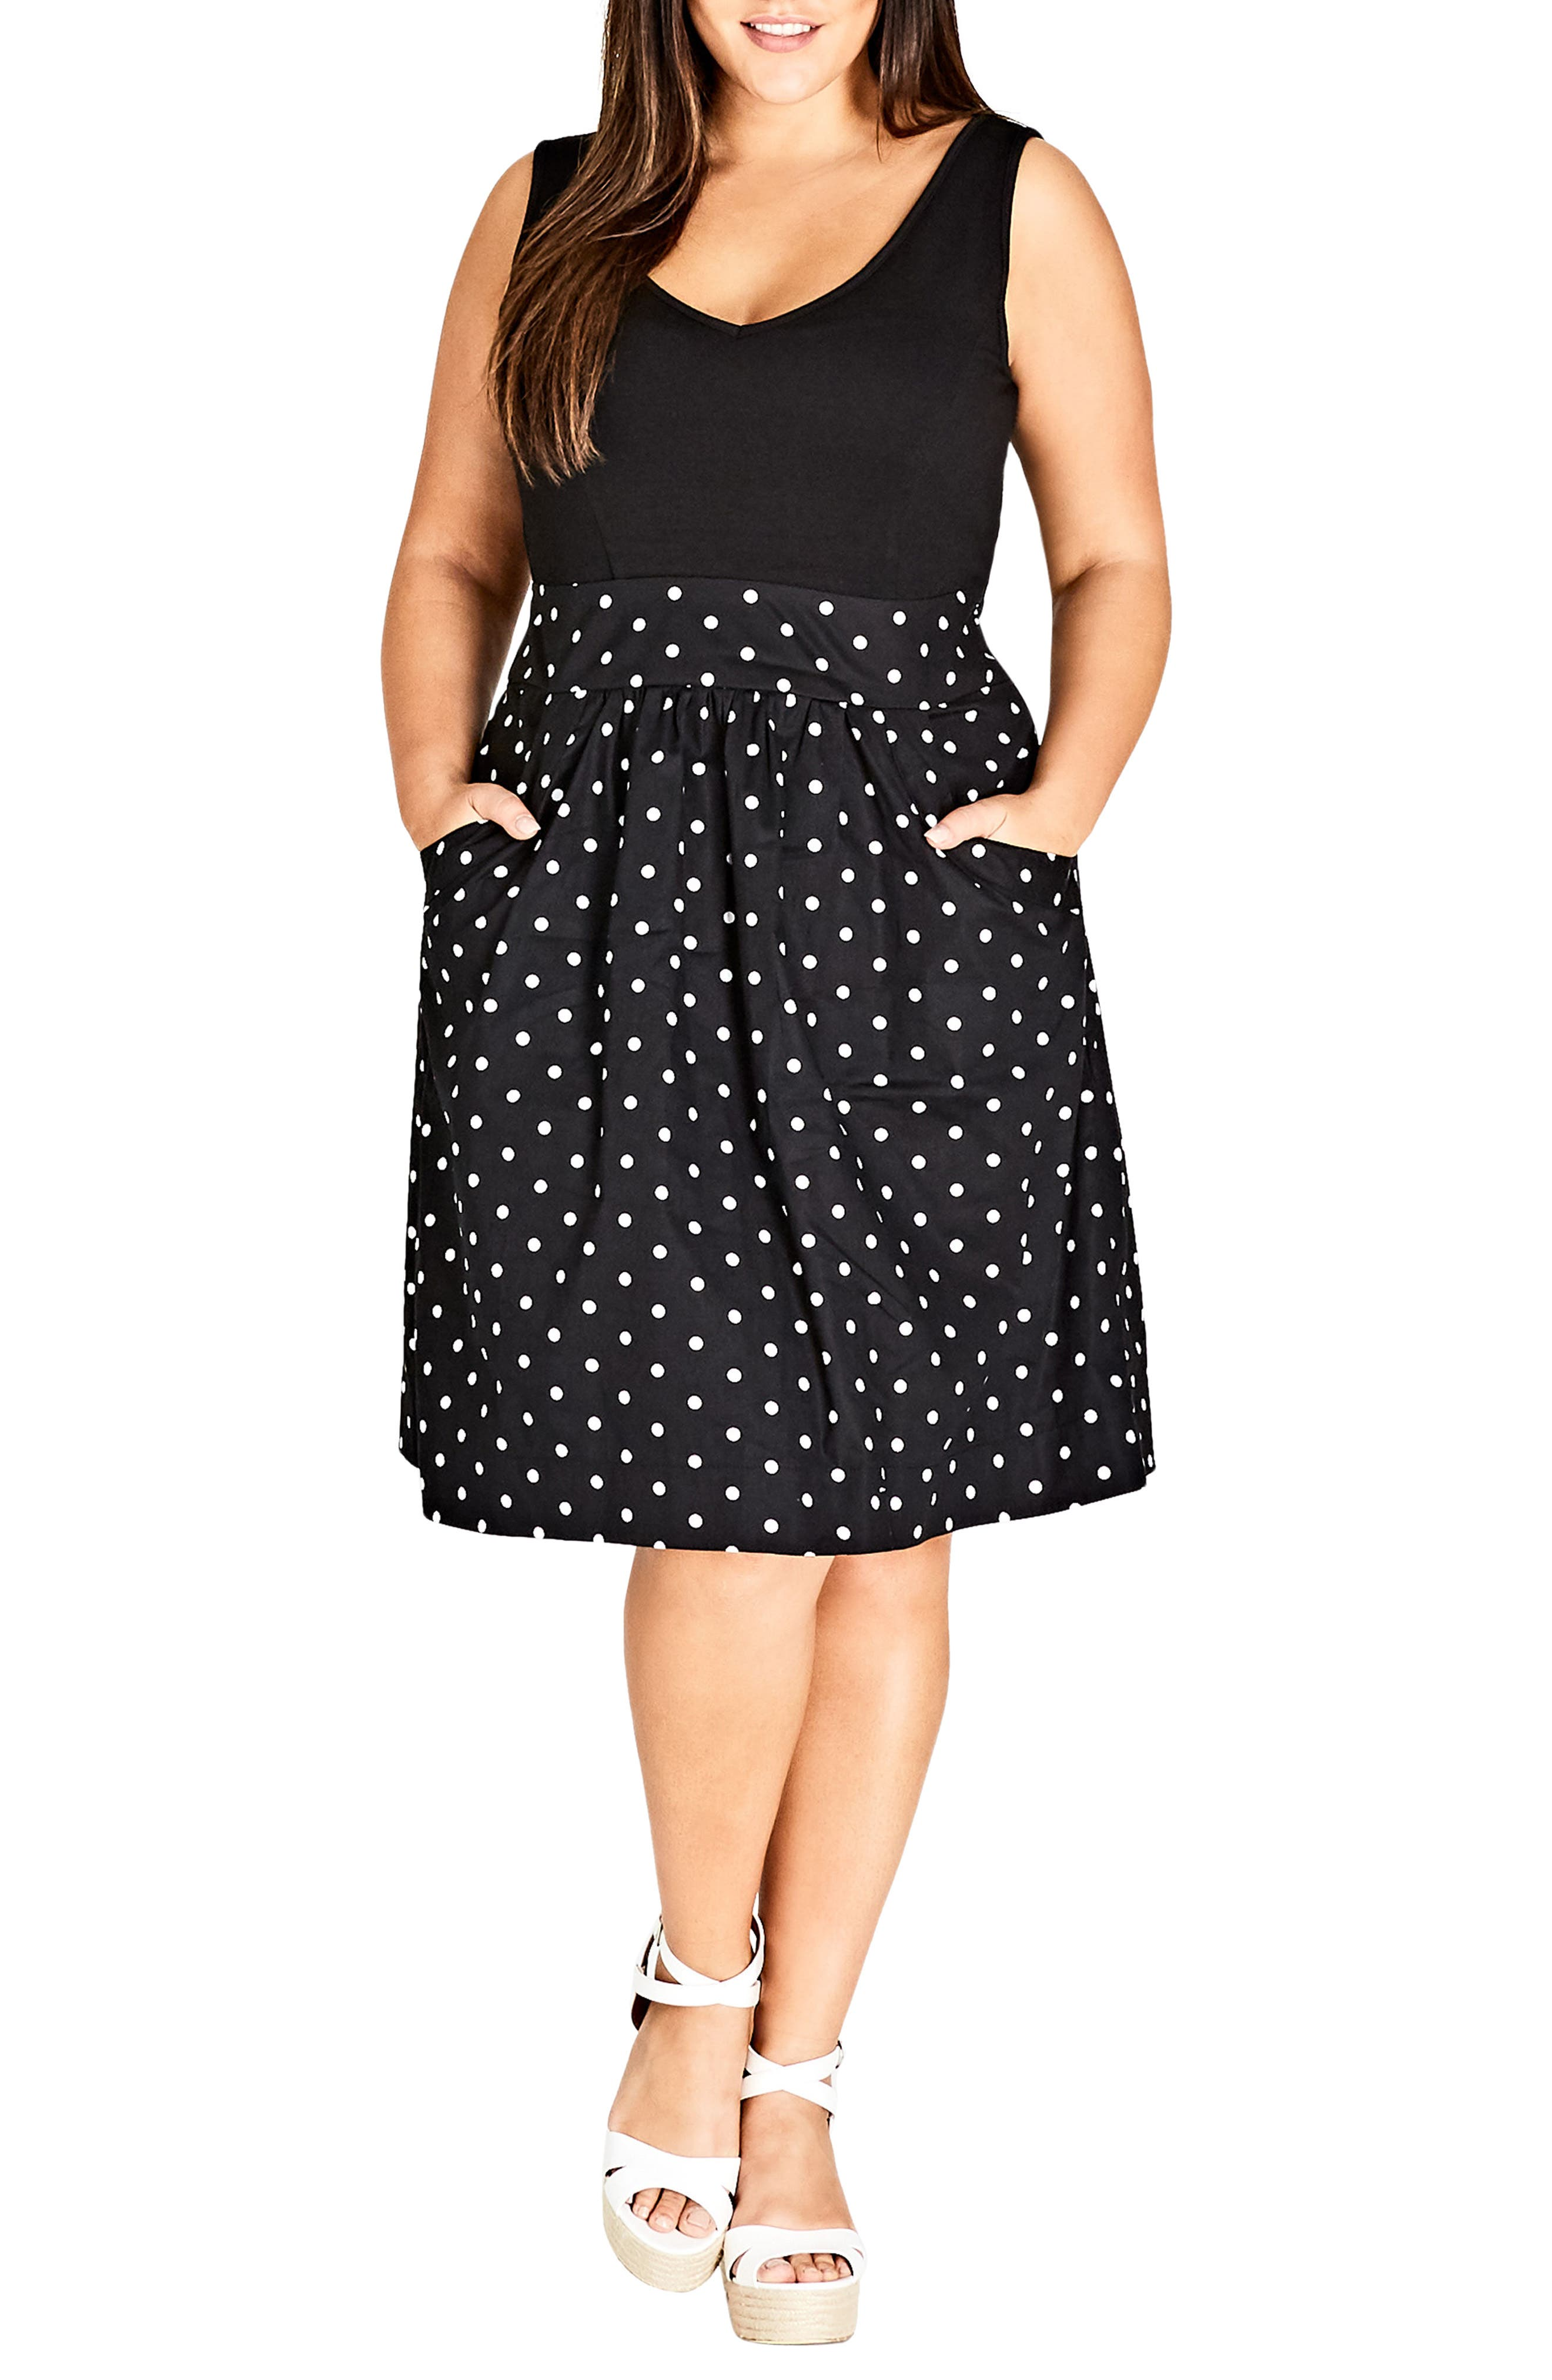 Simply Sweet Fit & Flare Dress,                             Main thumbnail 1, color,                             001